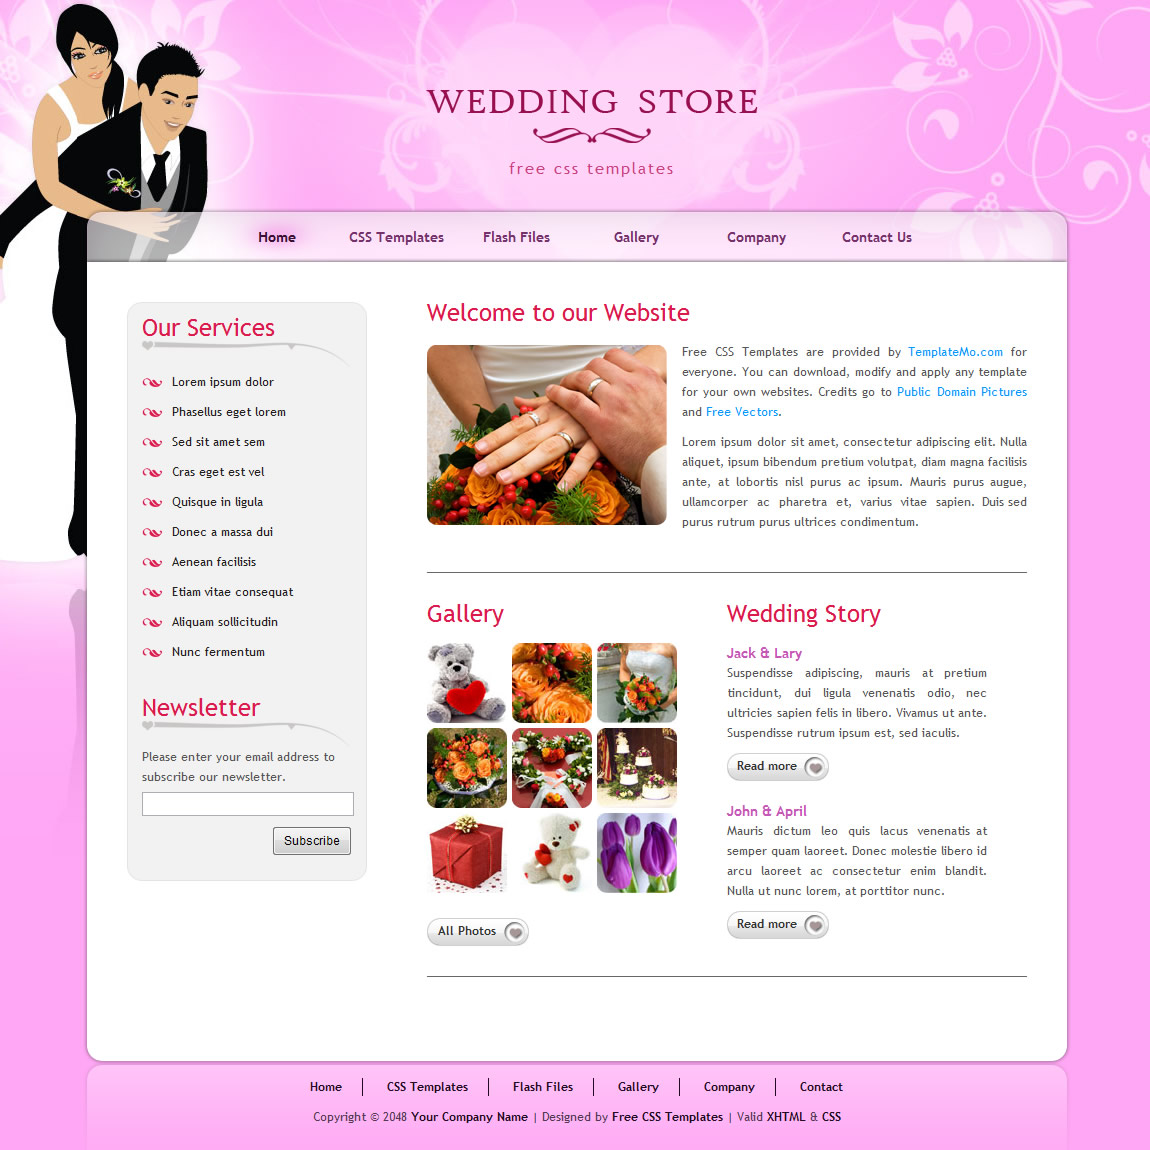 templatemo 224 wedding store